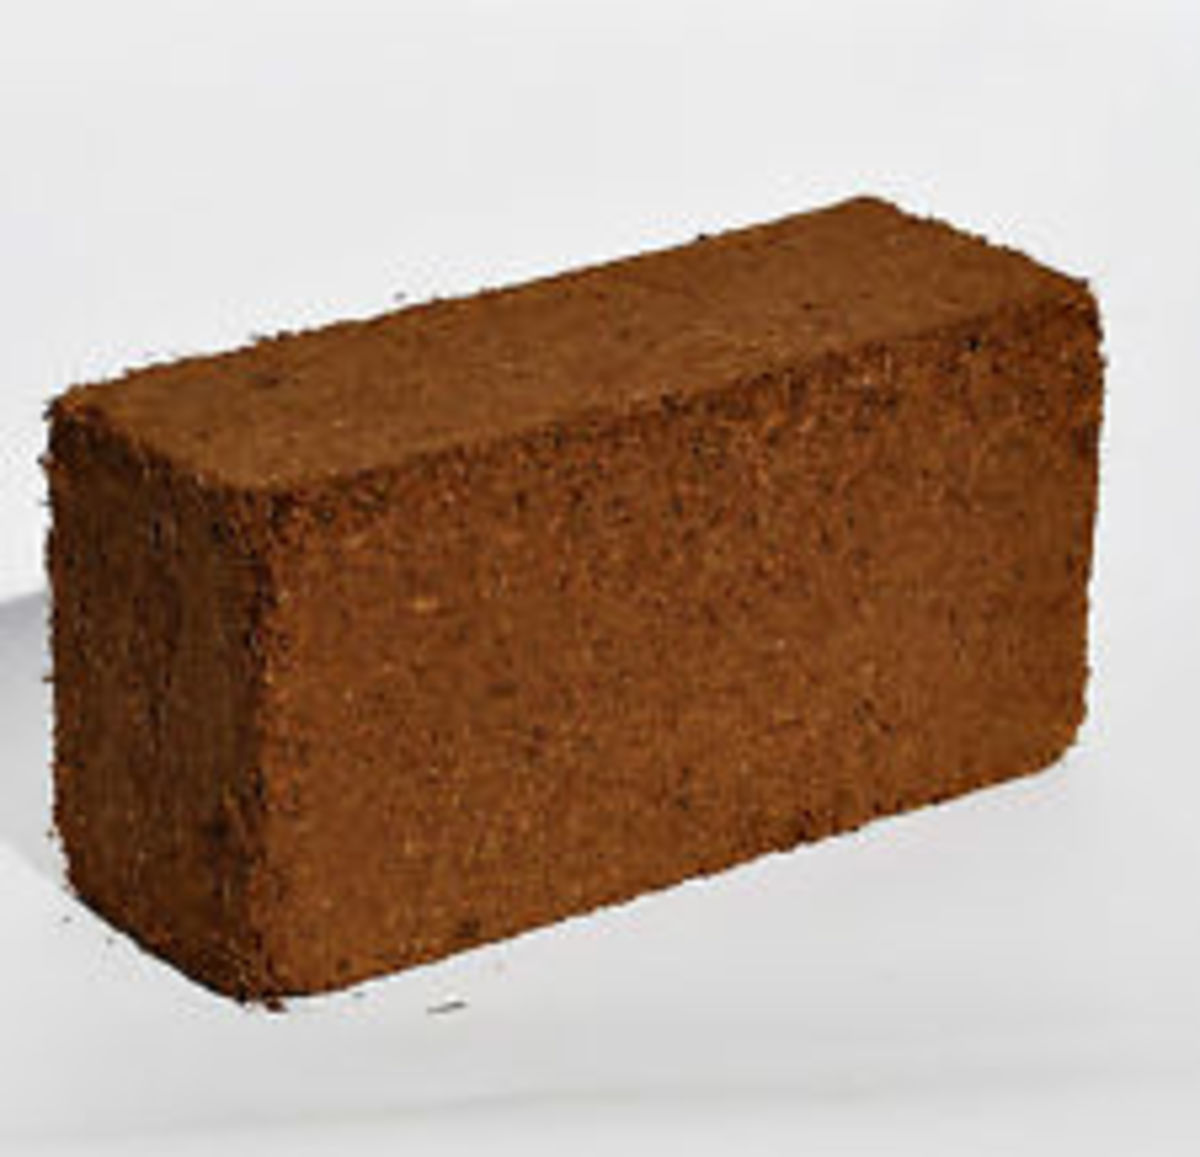 Coir substrate usually comes in the form of a brick.